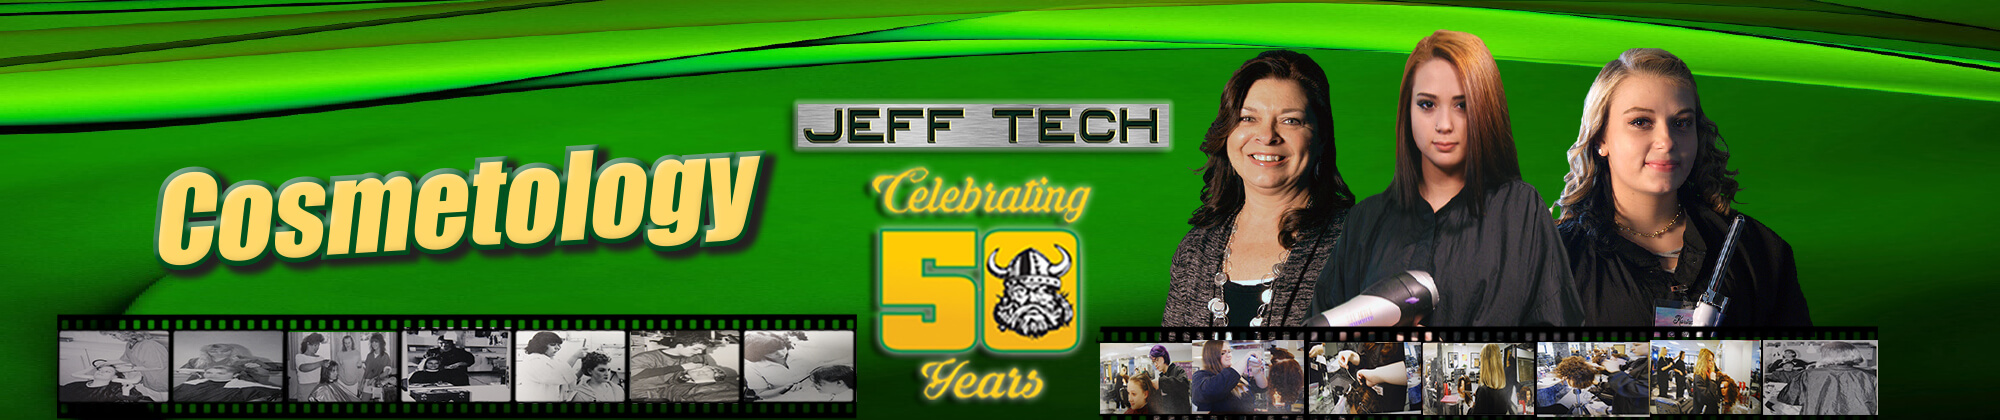 Jeff Tech Celebrating 50 Years. Cosmetology. Learn more about our CTE programs.